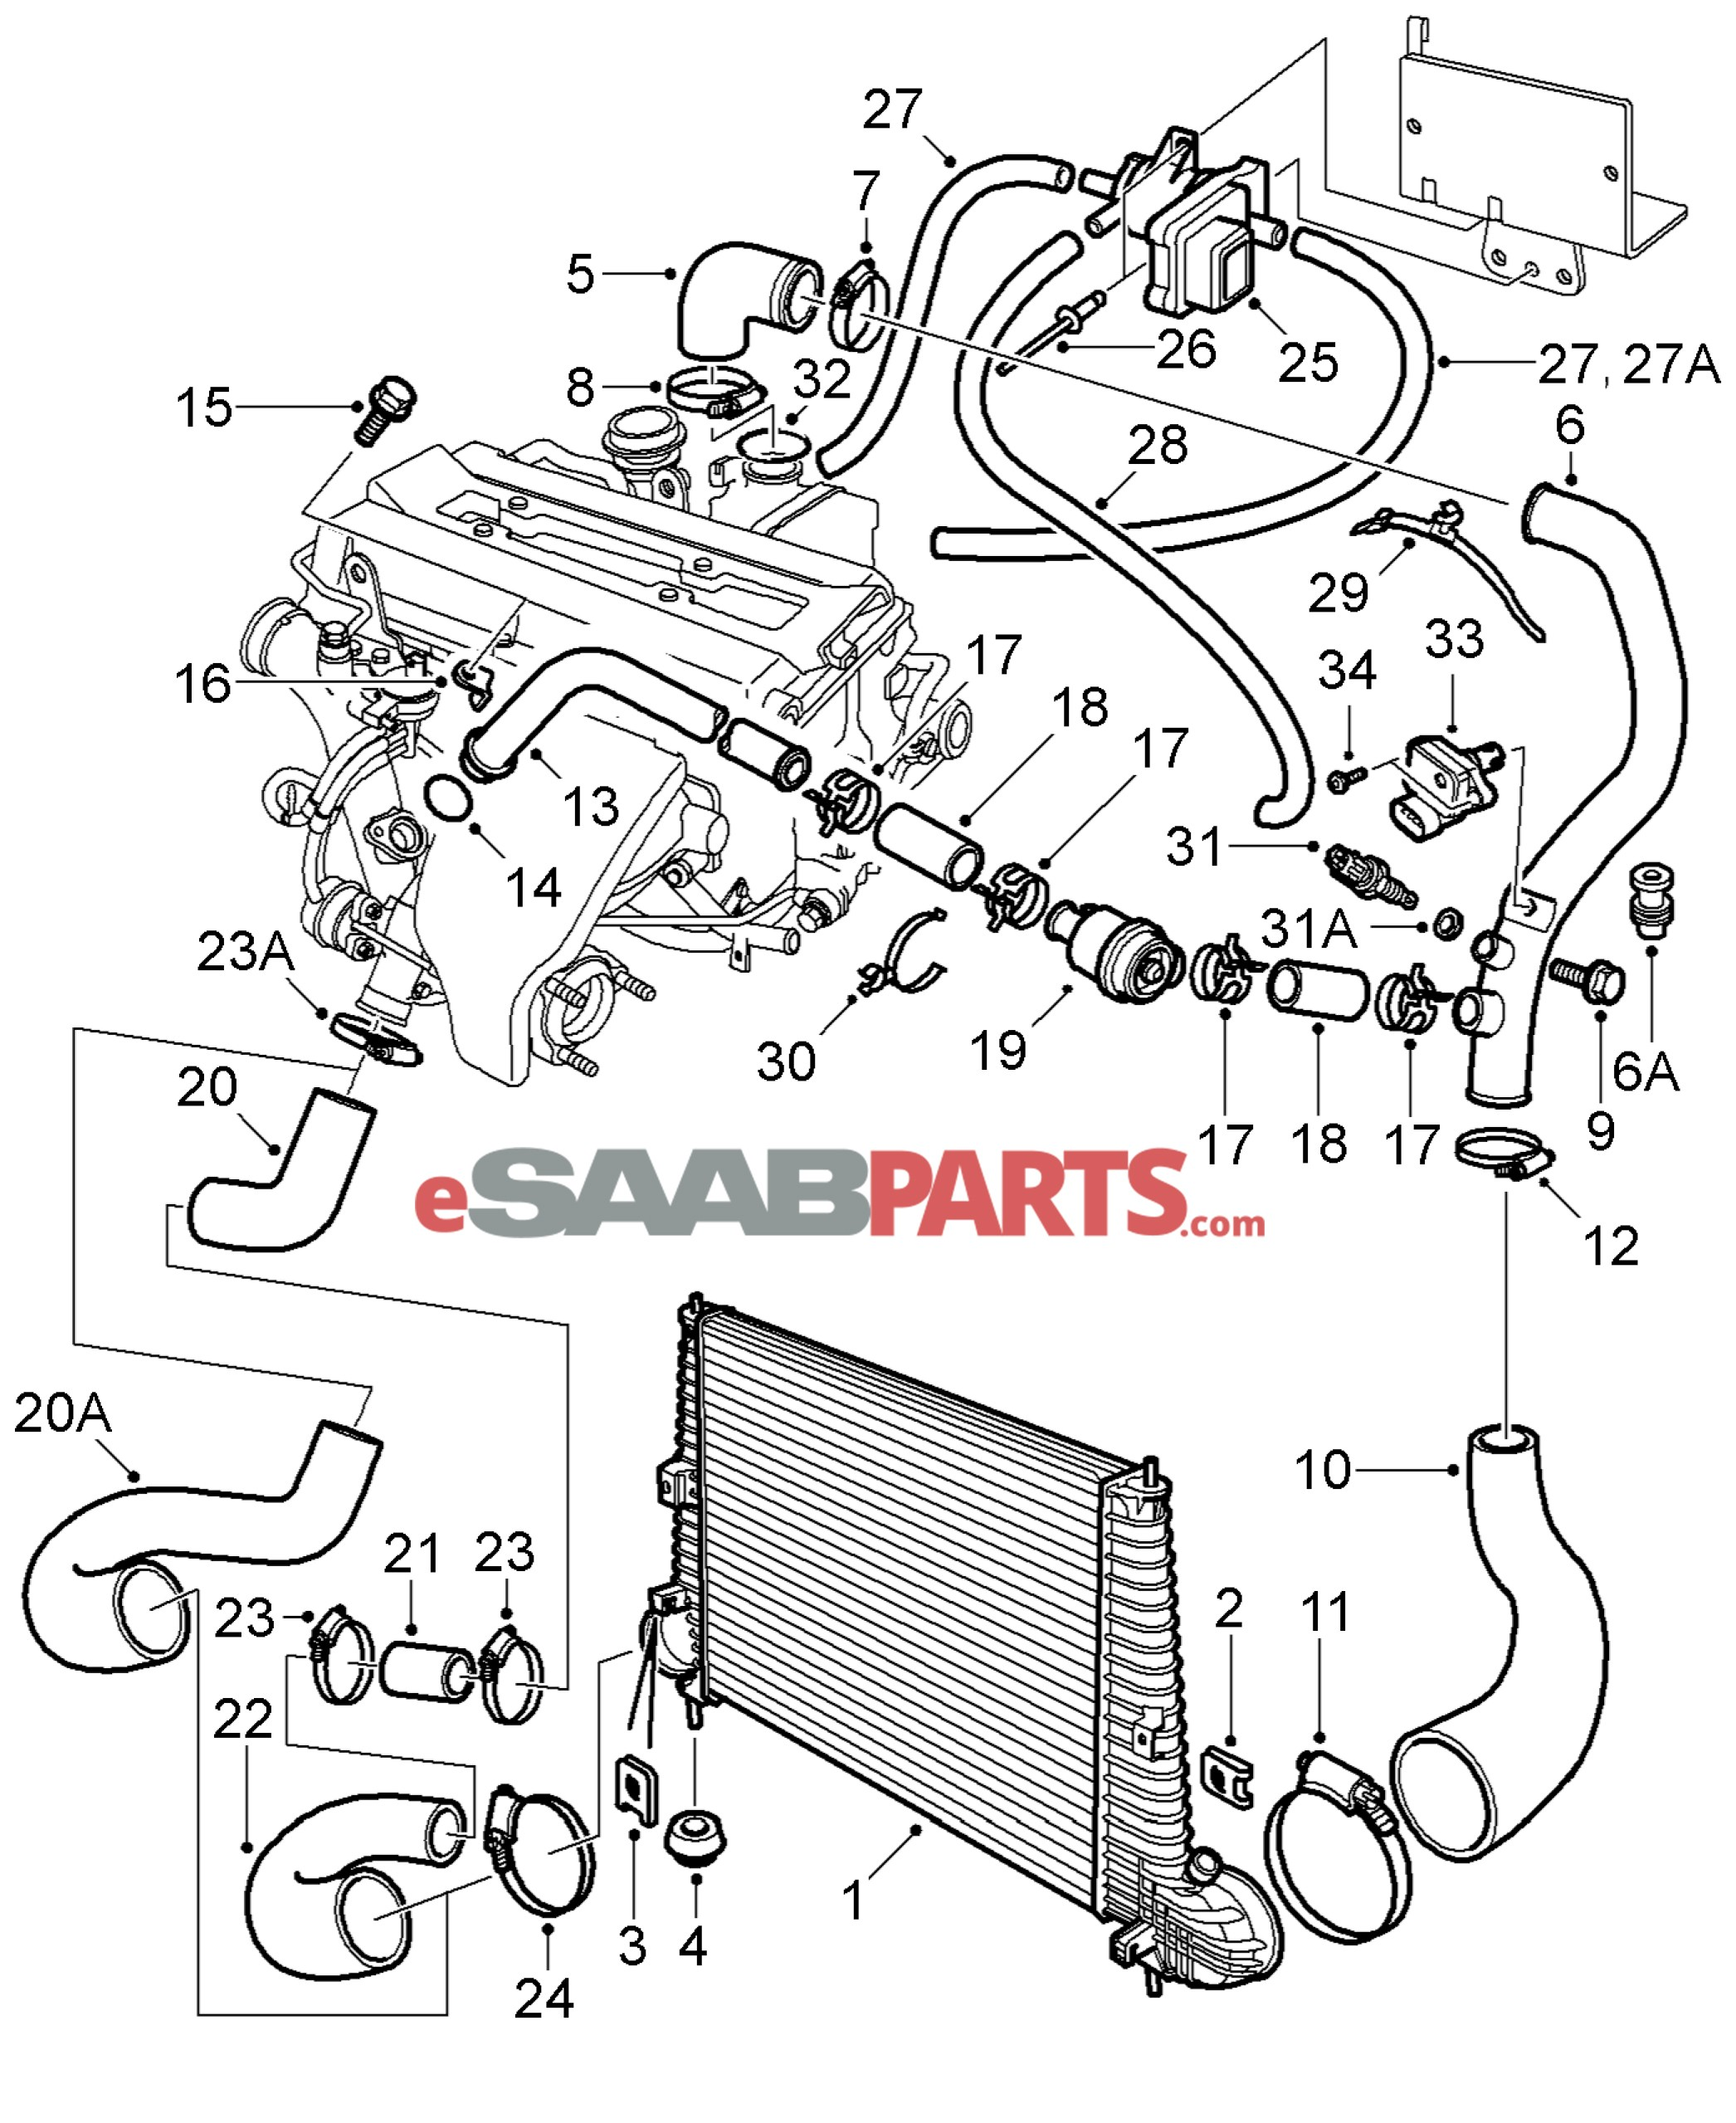 2001 saab 9 5 wiring diagram images gallery